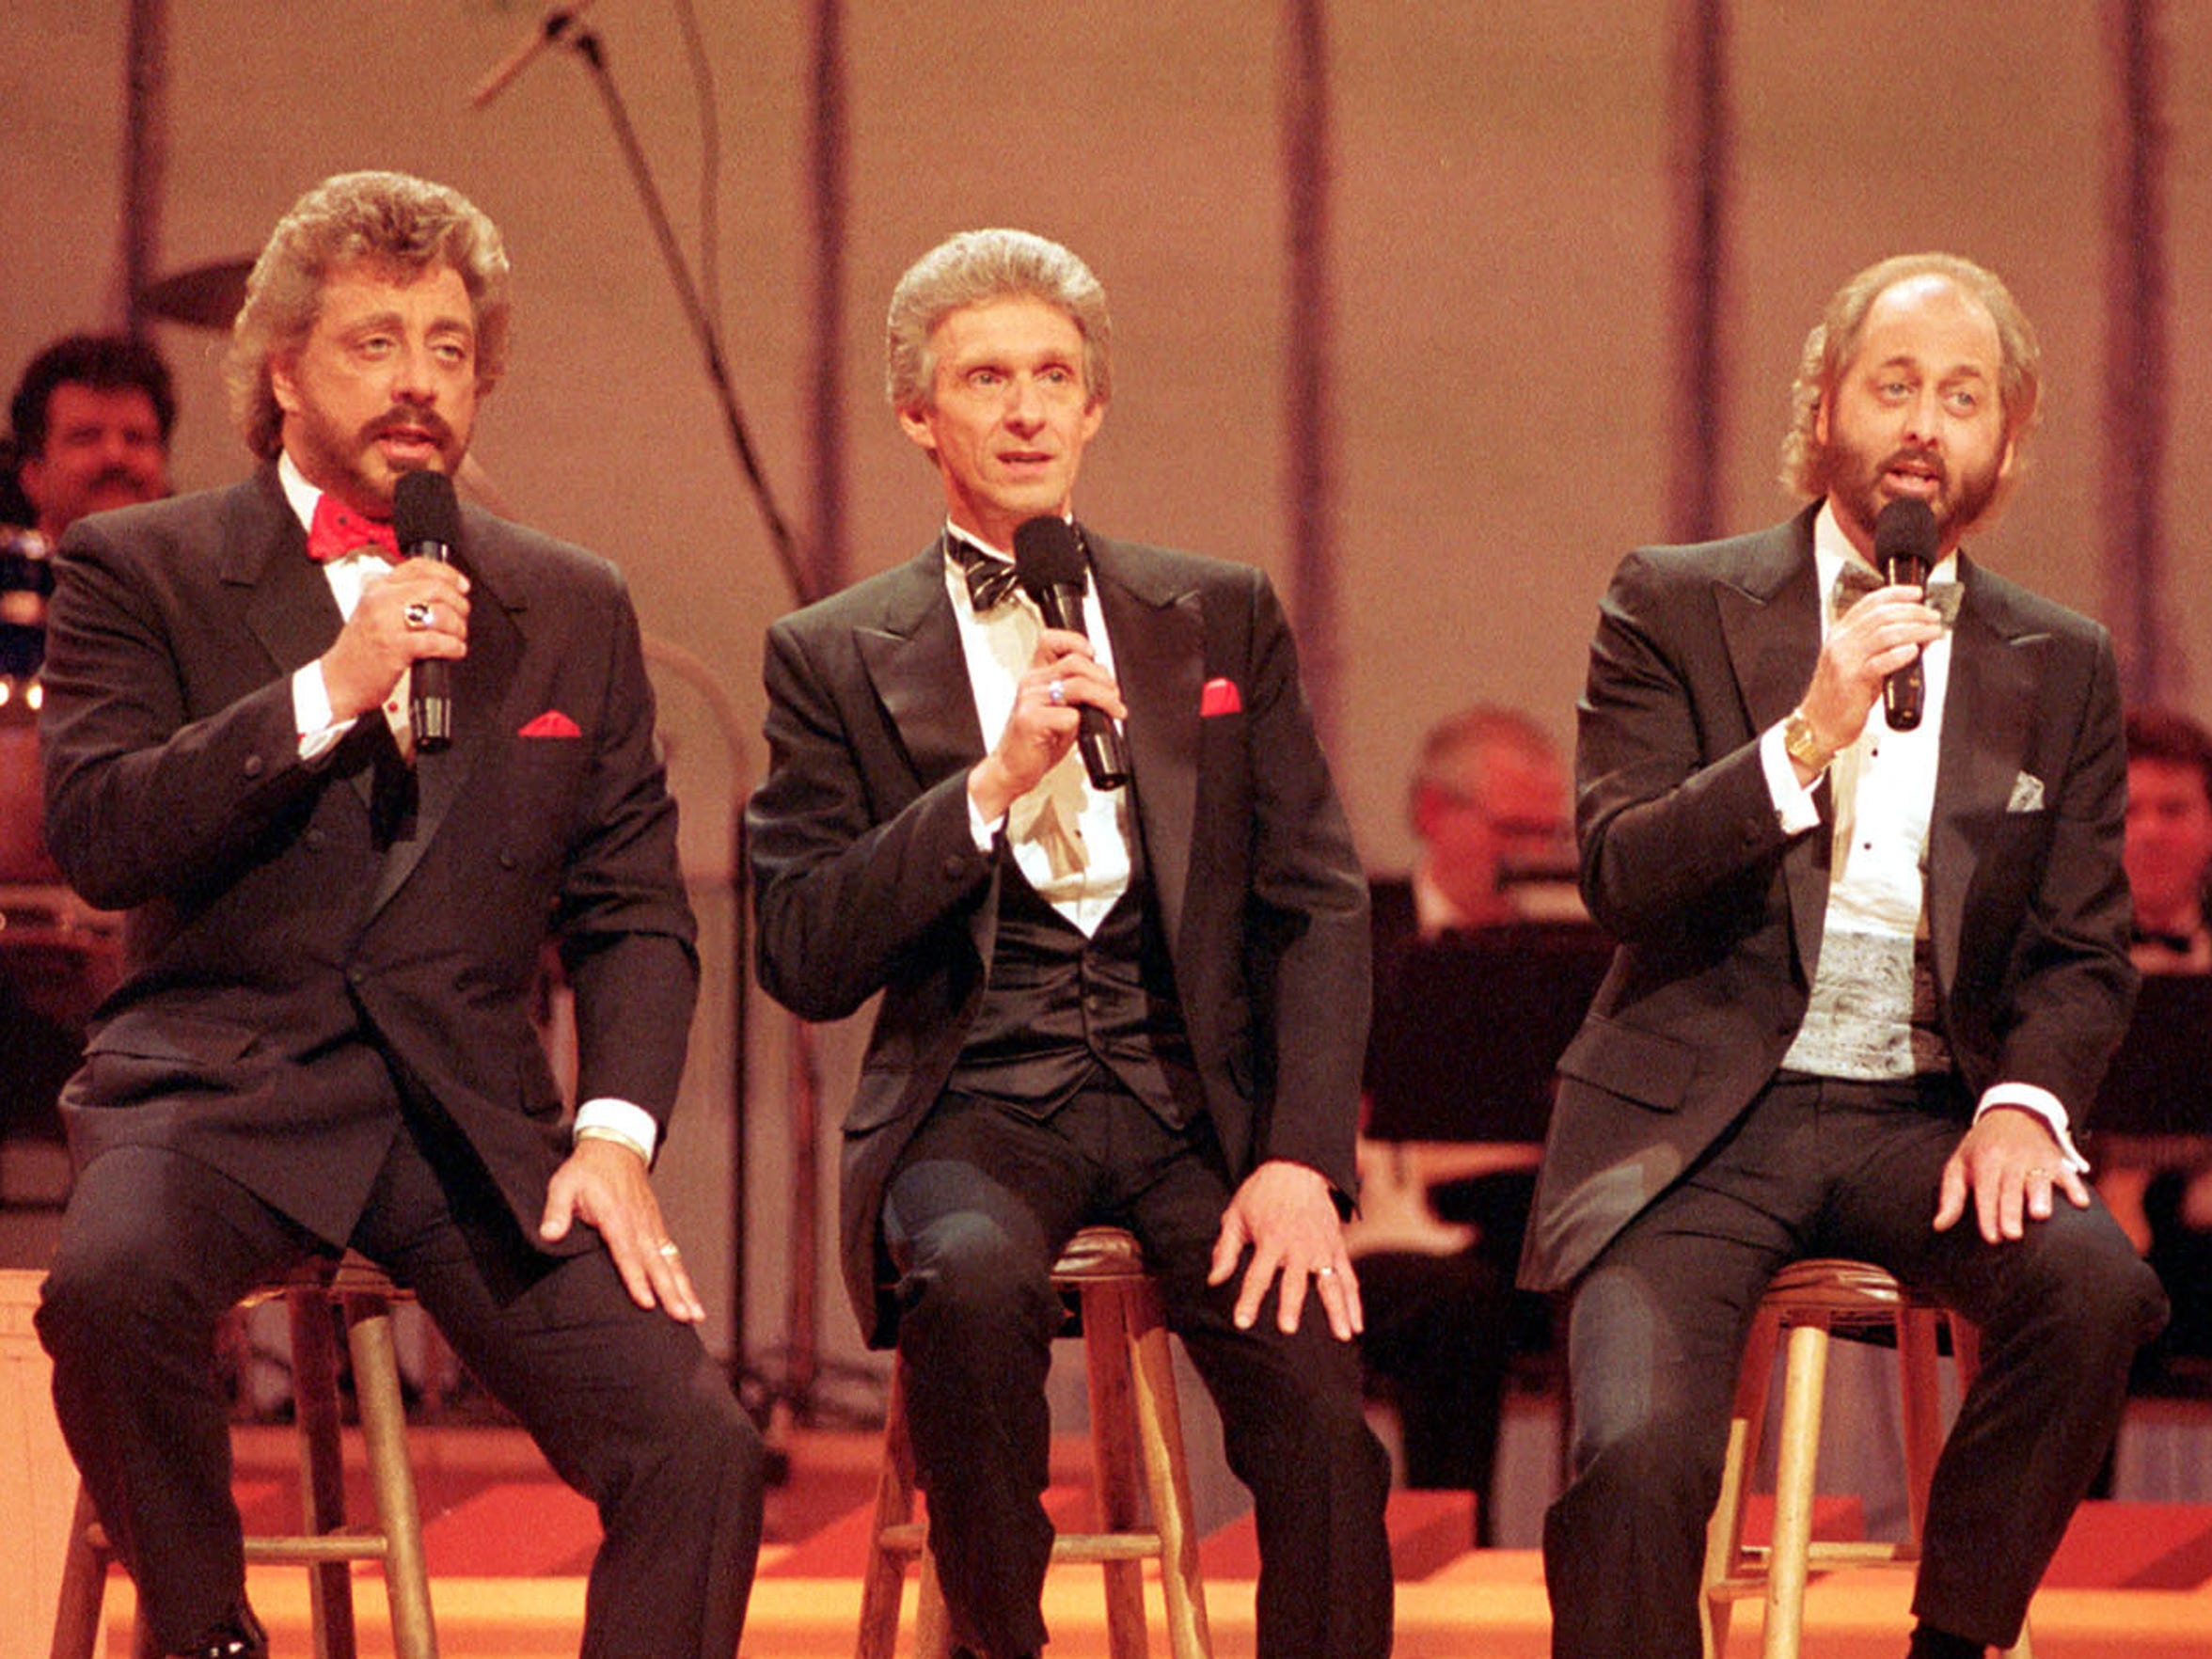 The Statler Brothers, from left, Harold Reid, Phil